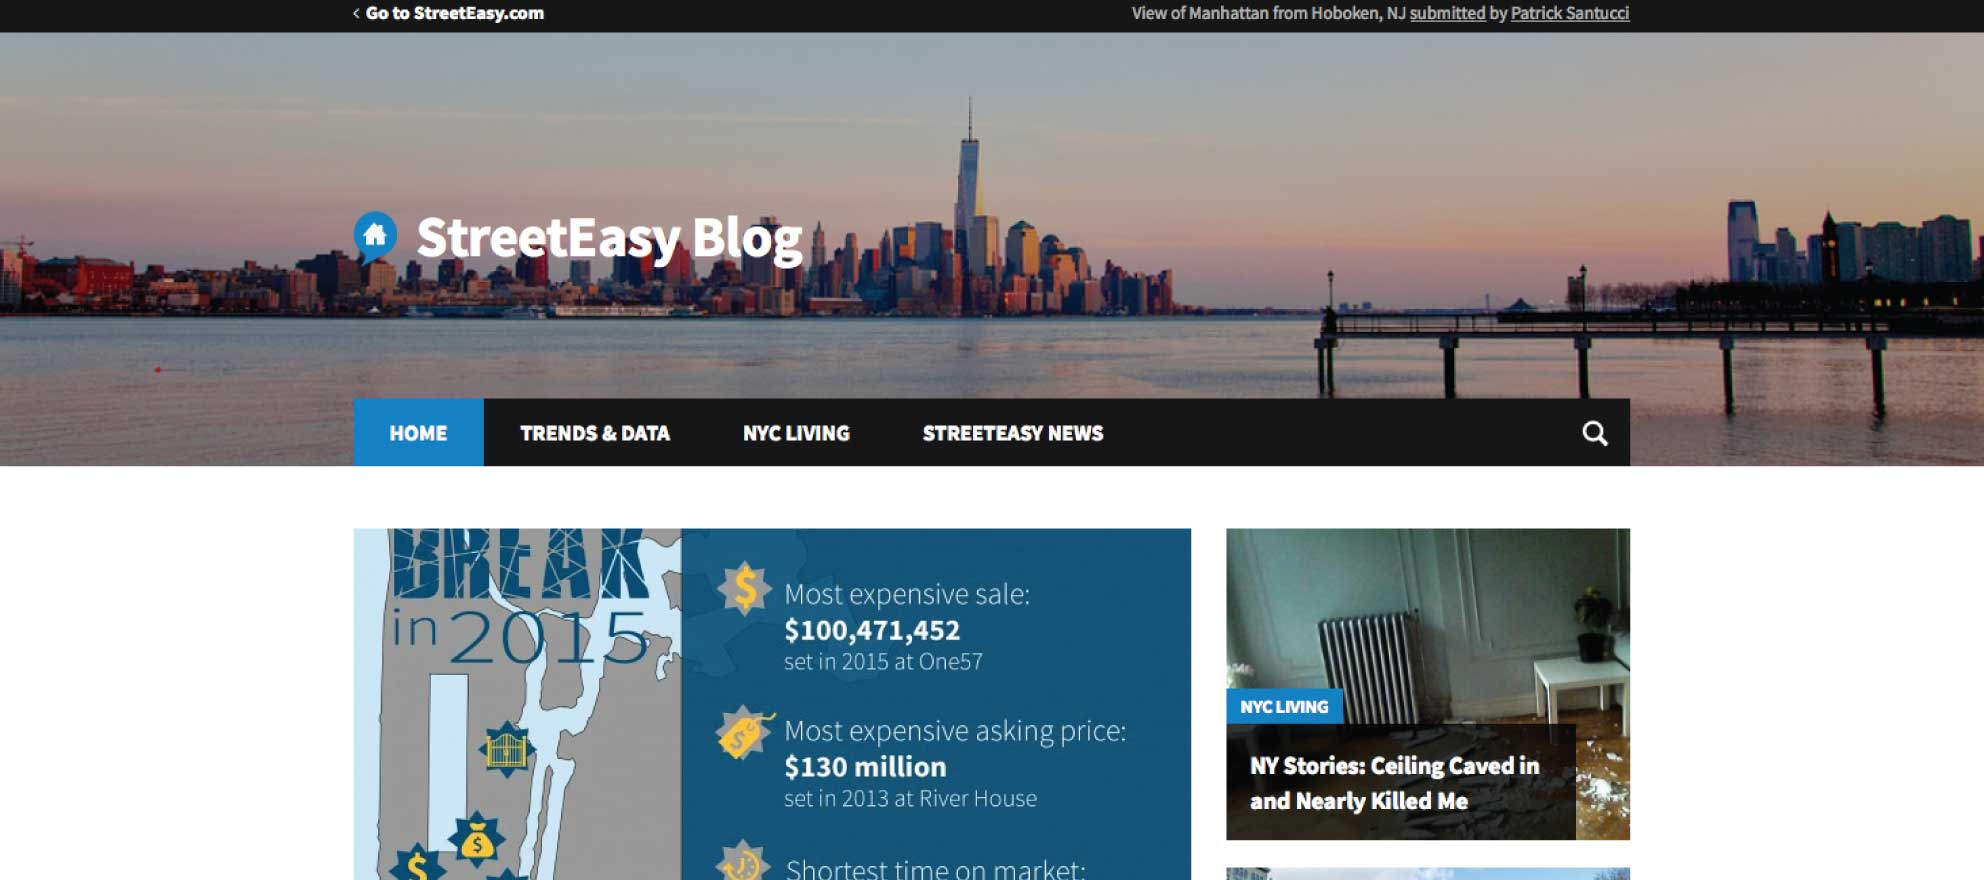 StreetEasy takes page out of Zillow's marketing playbook